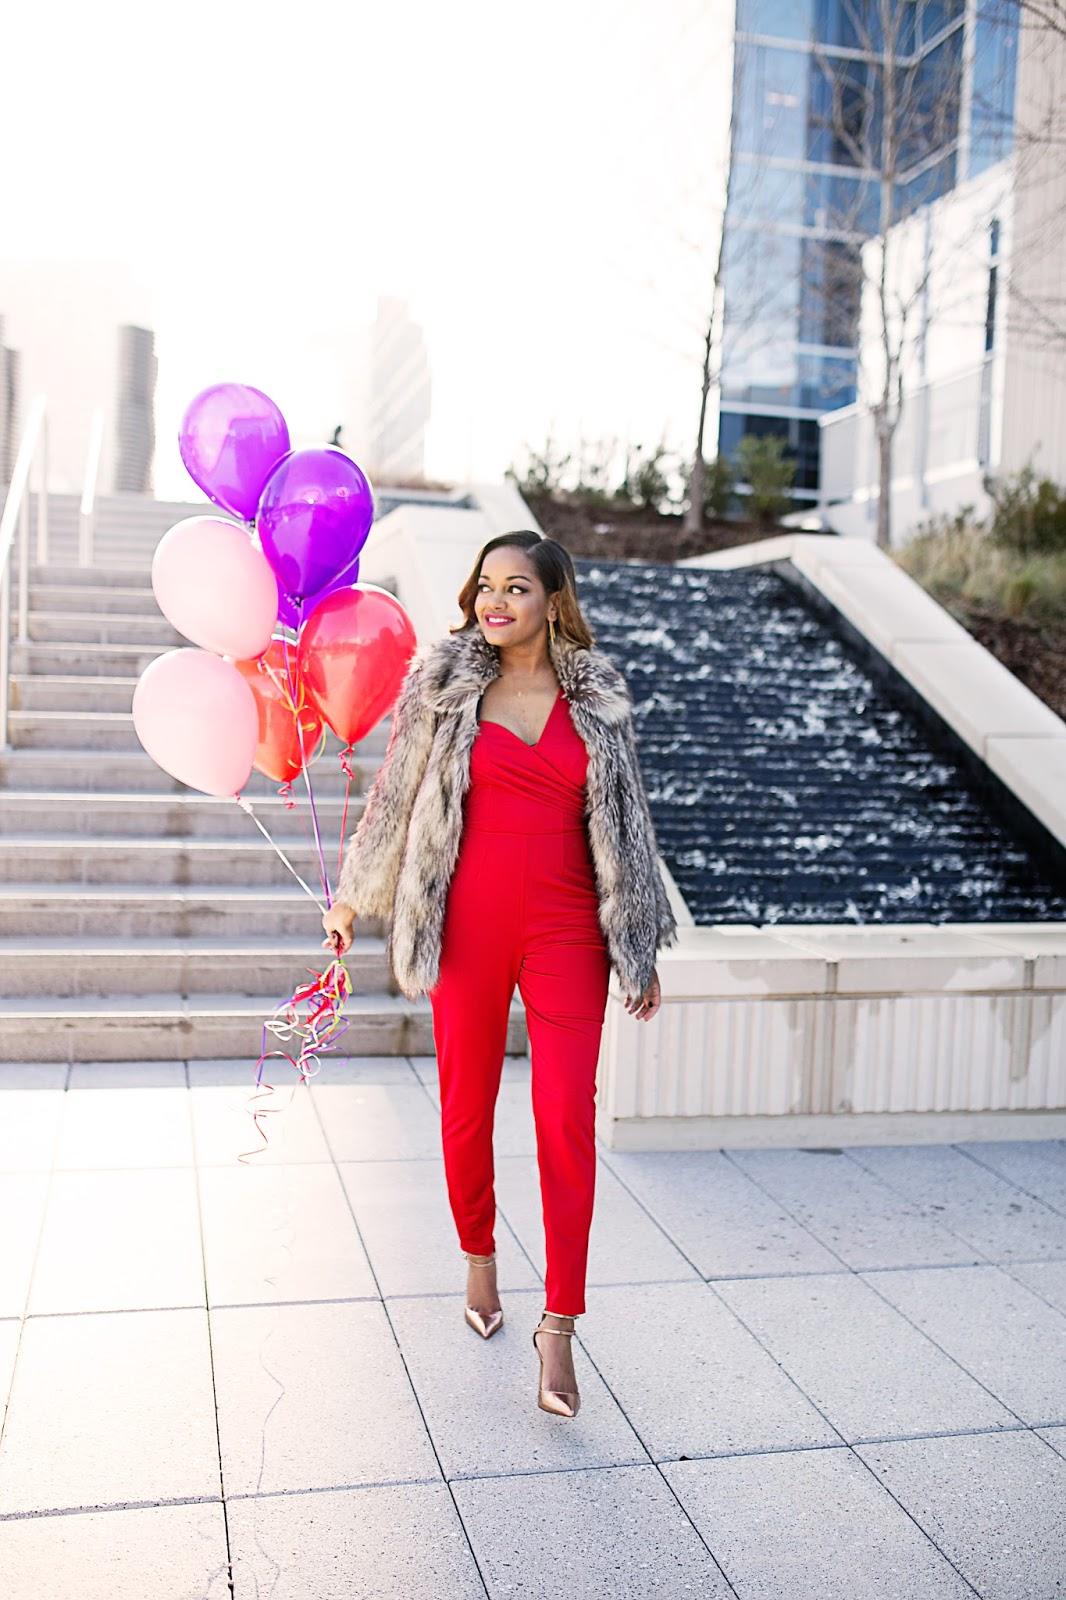 asos red jumpsuit- valentines day outfit ideas- zara metallic heels- asos faux fur jacket- how to wear jumpsuit- fashion blogger- black girl blogger- dallas blogger- fashion balloon photoshoot-red lips woman of color- blush pink jumpsuit